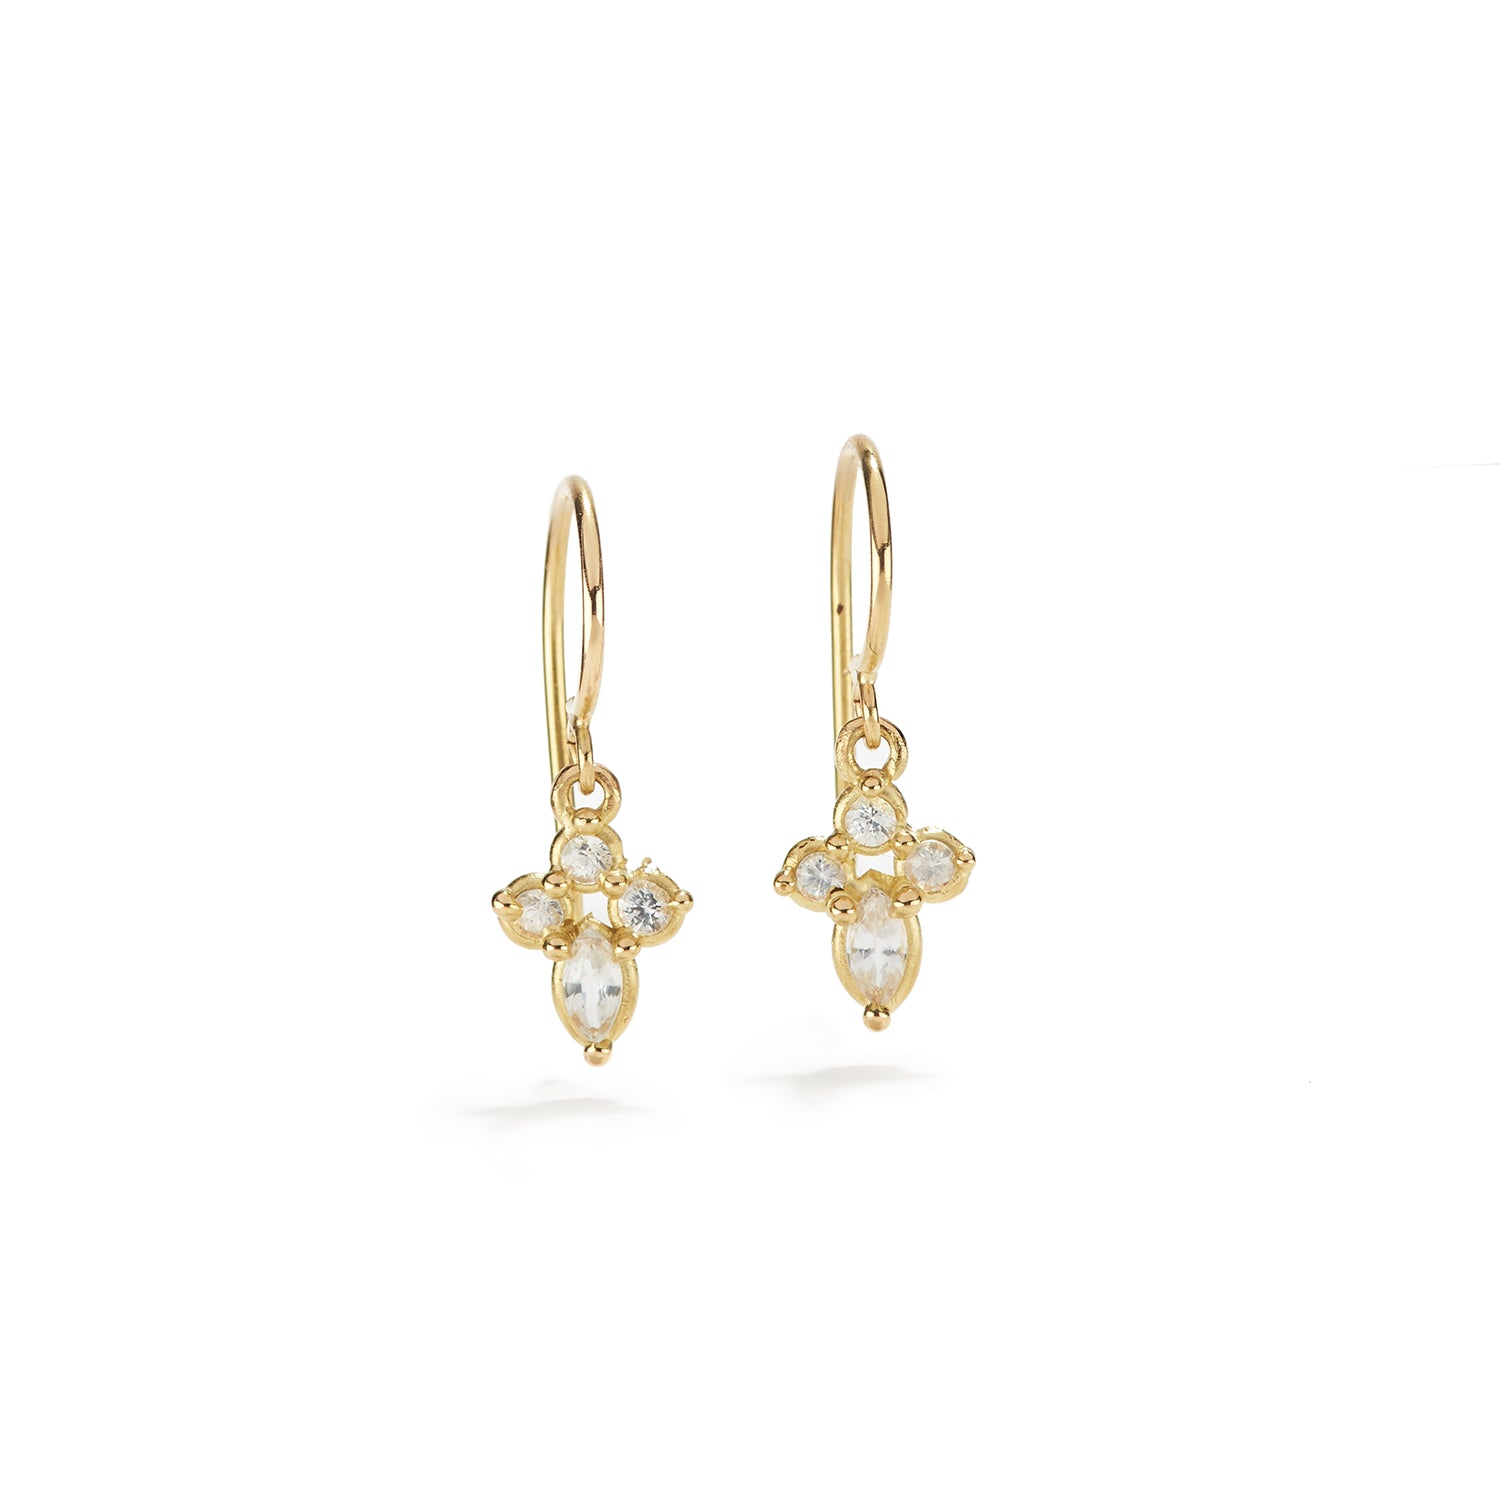 King Lily Earrings with White Sapphire